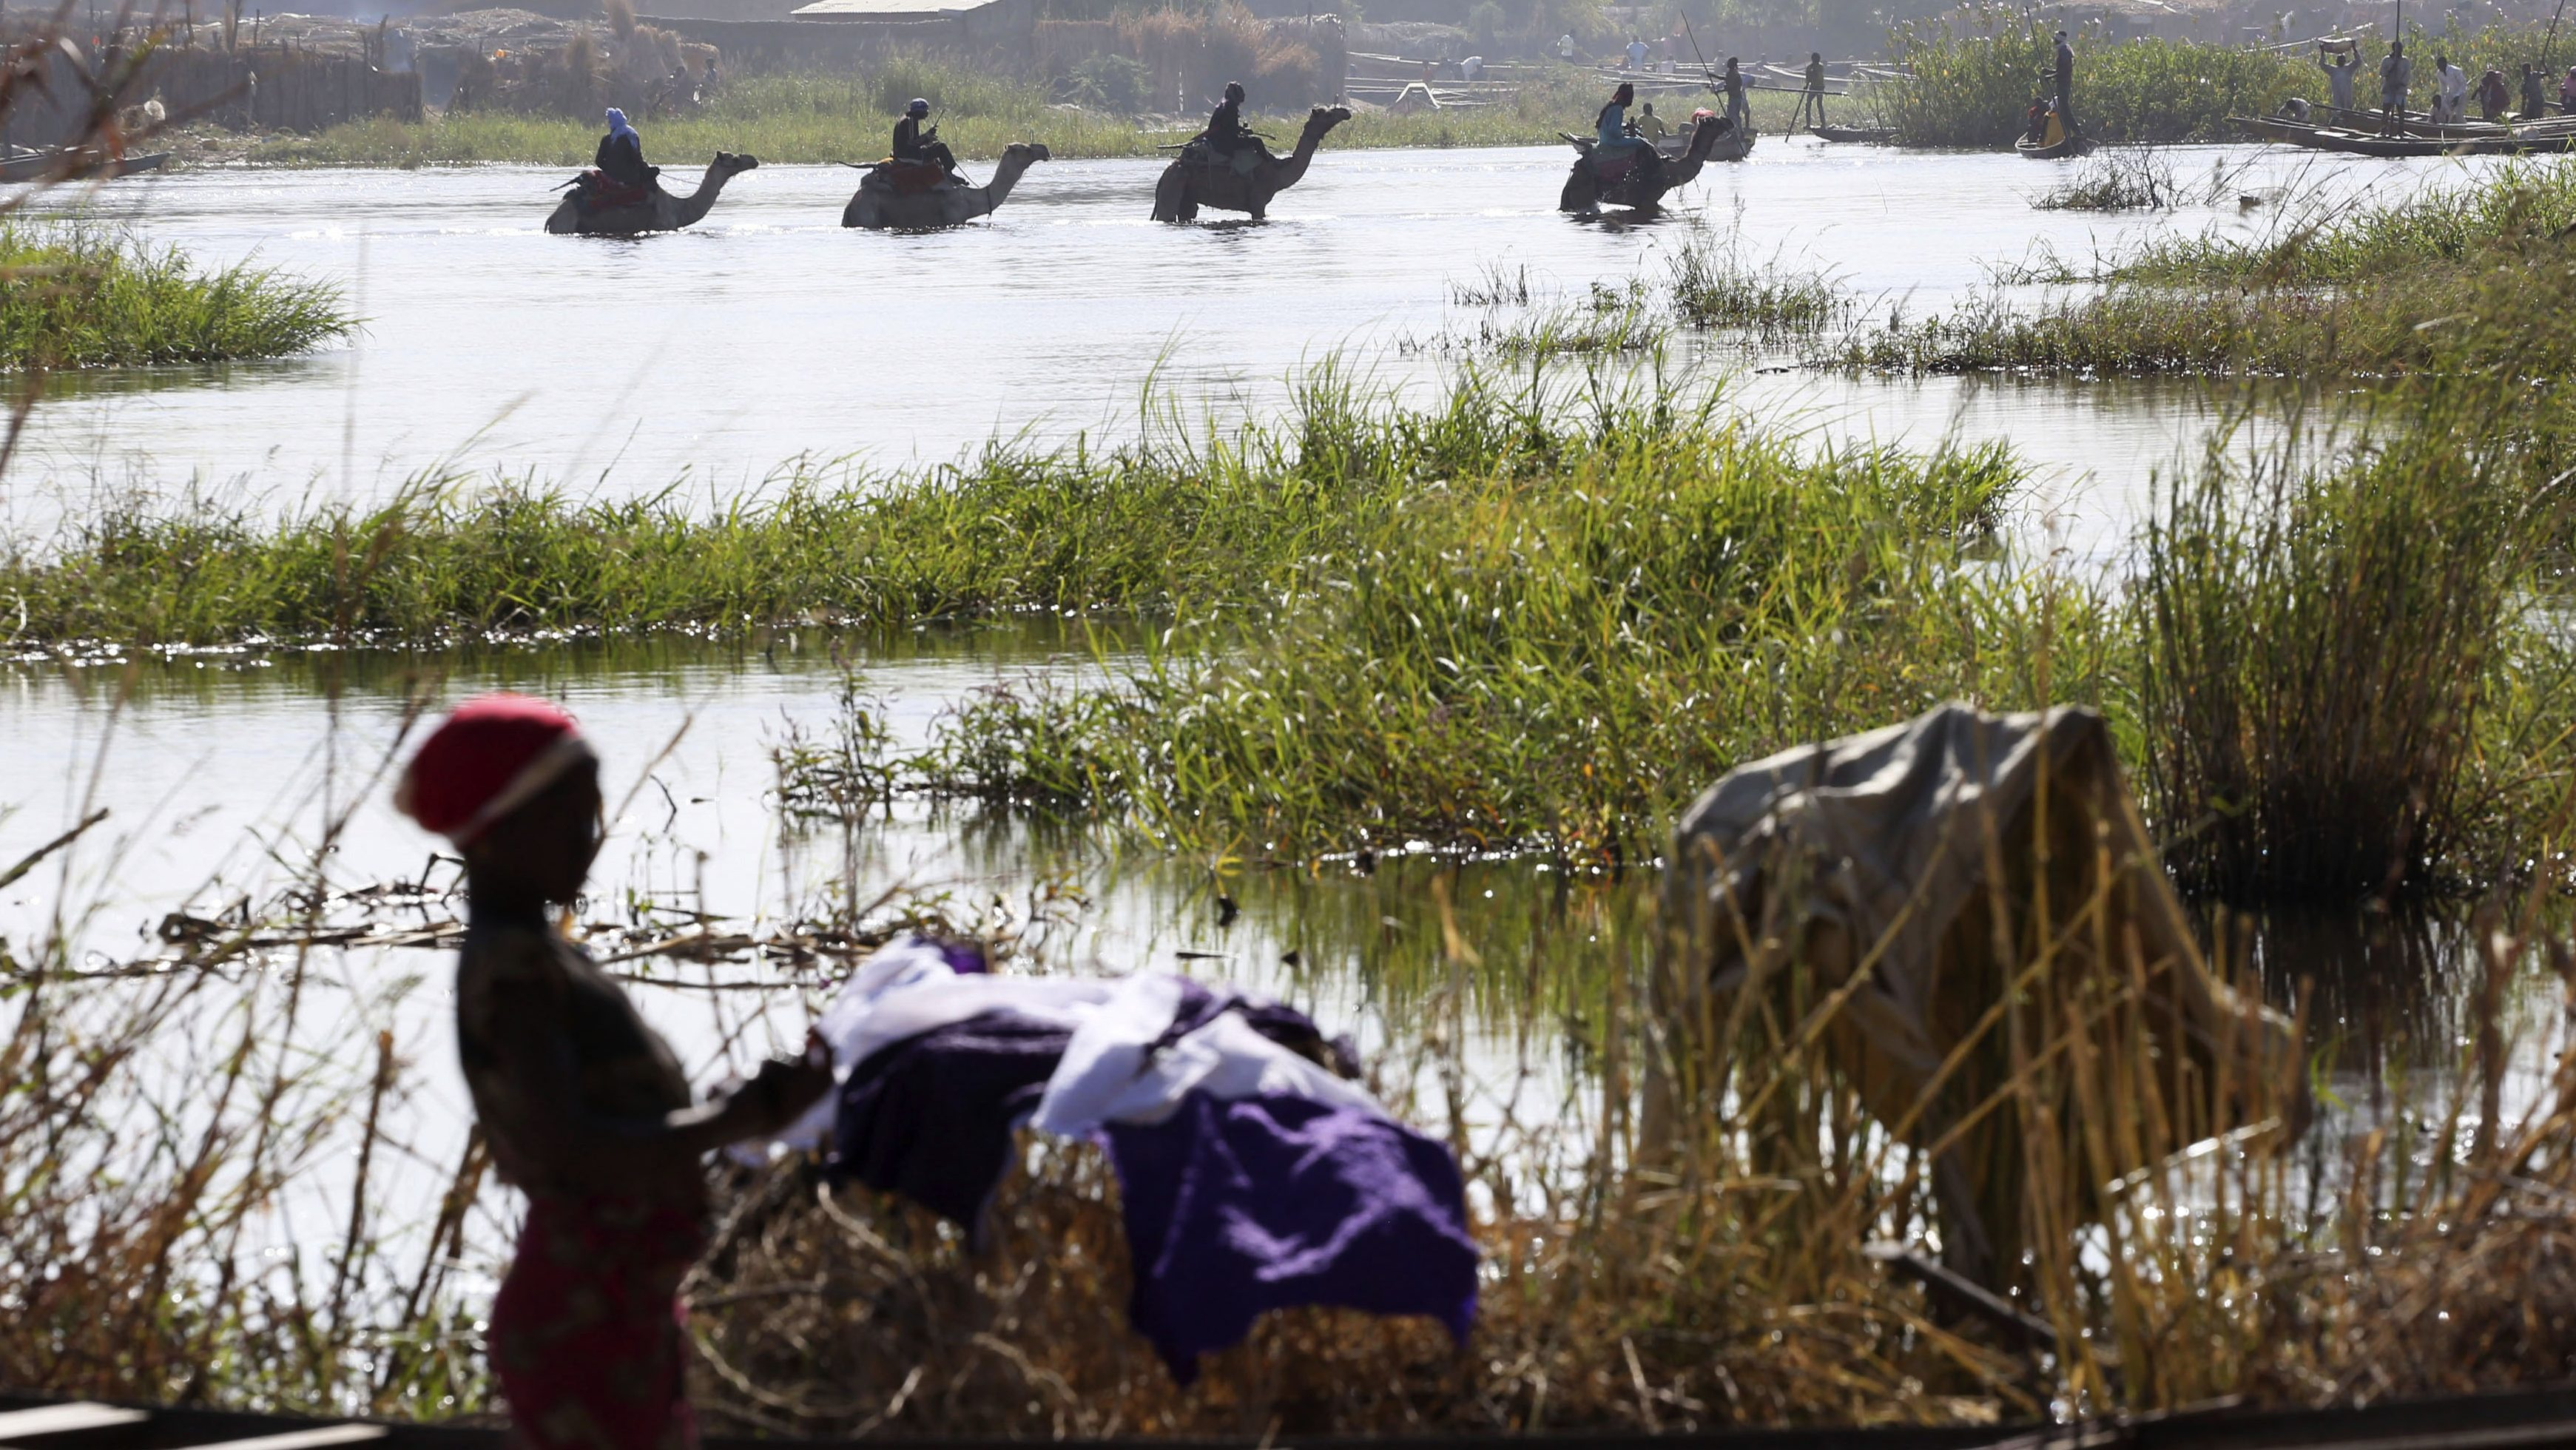 Scientists aren't certain climate change is shrinking Lake Chad